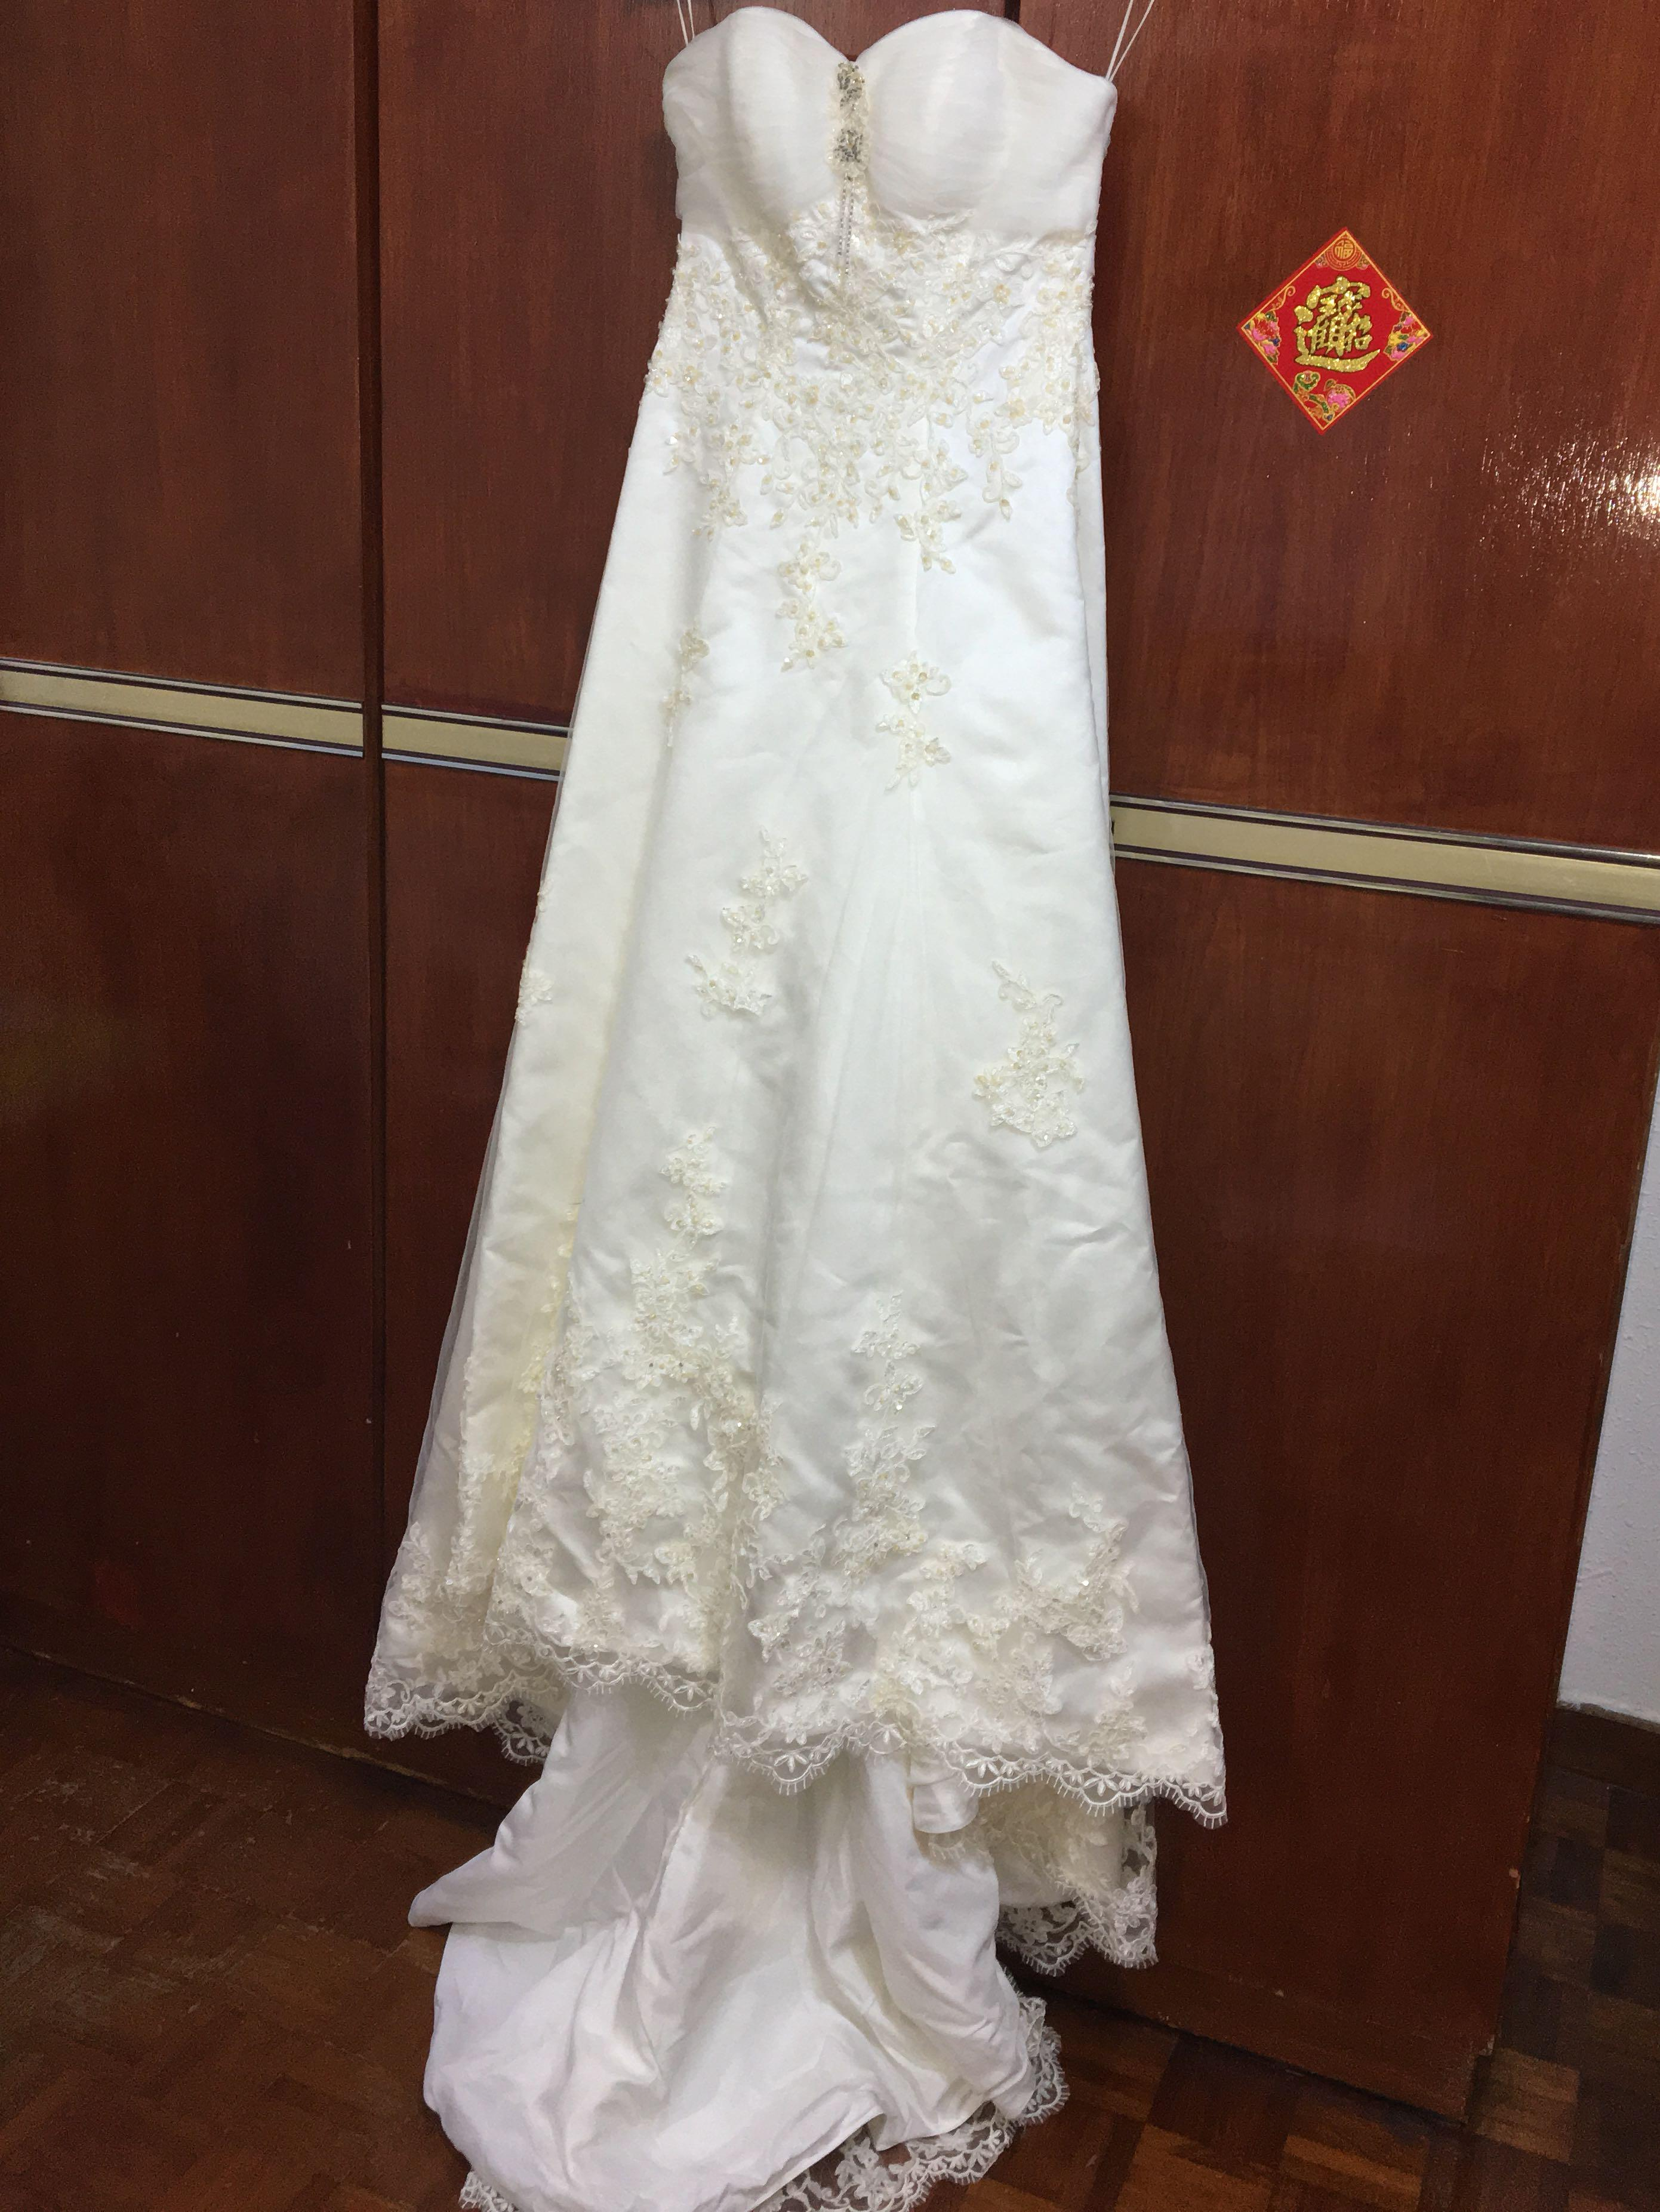 Wedding Gown Mermaid Tail Custom Made One Of Its Kind Women S Fashion Clothes Dresses Skirts On Carousell,Wedding Long Beautiful Dresses For Girls